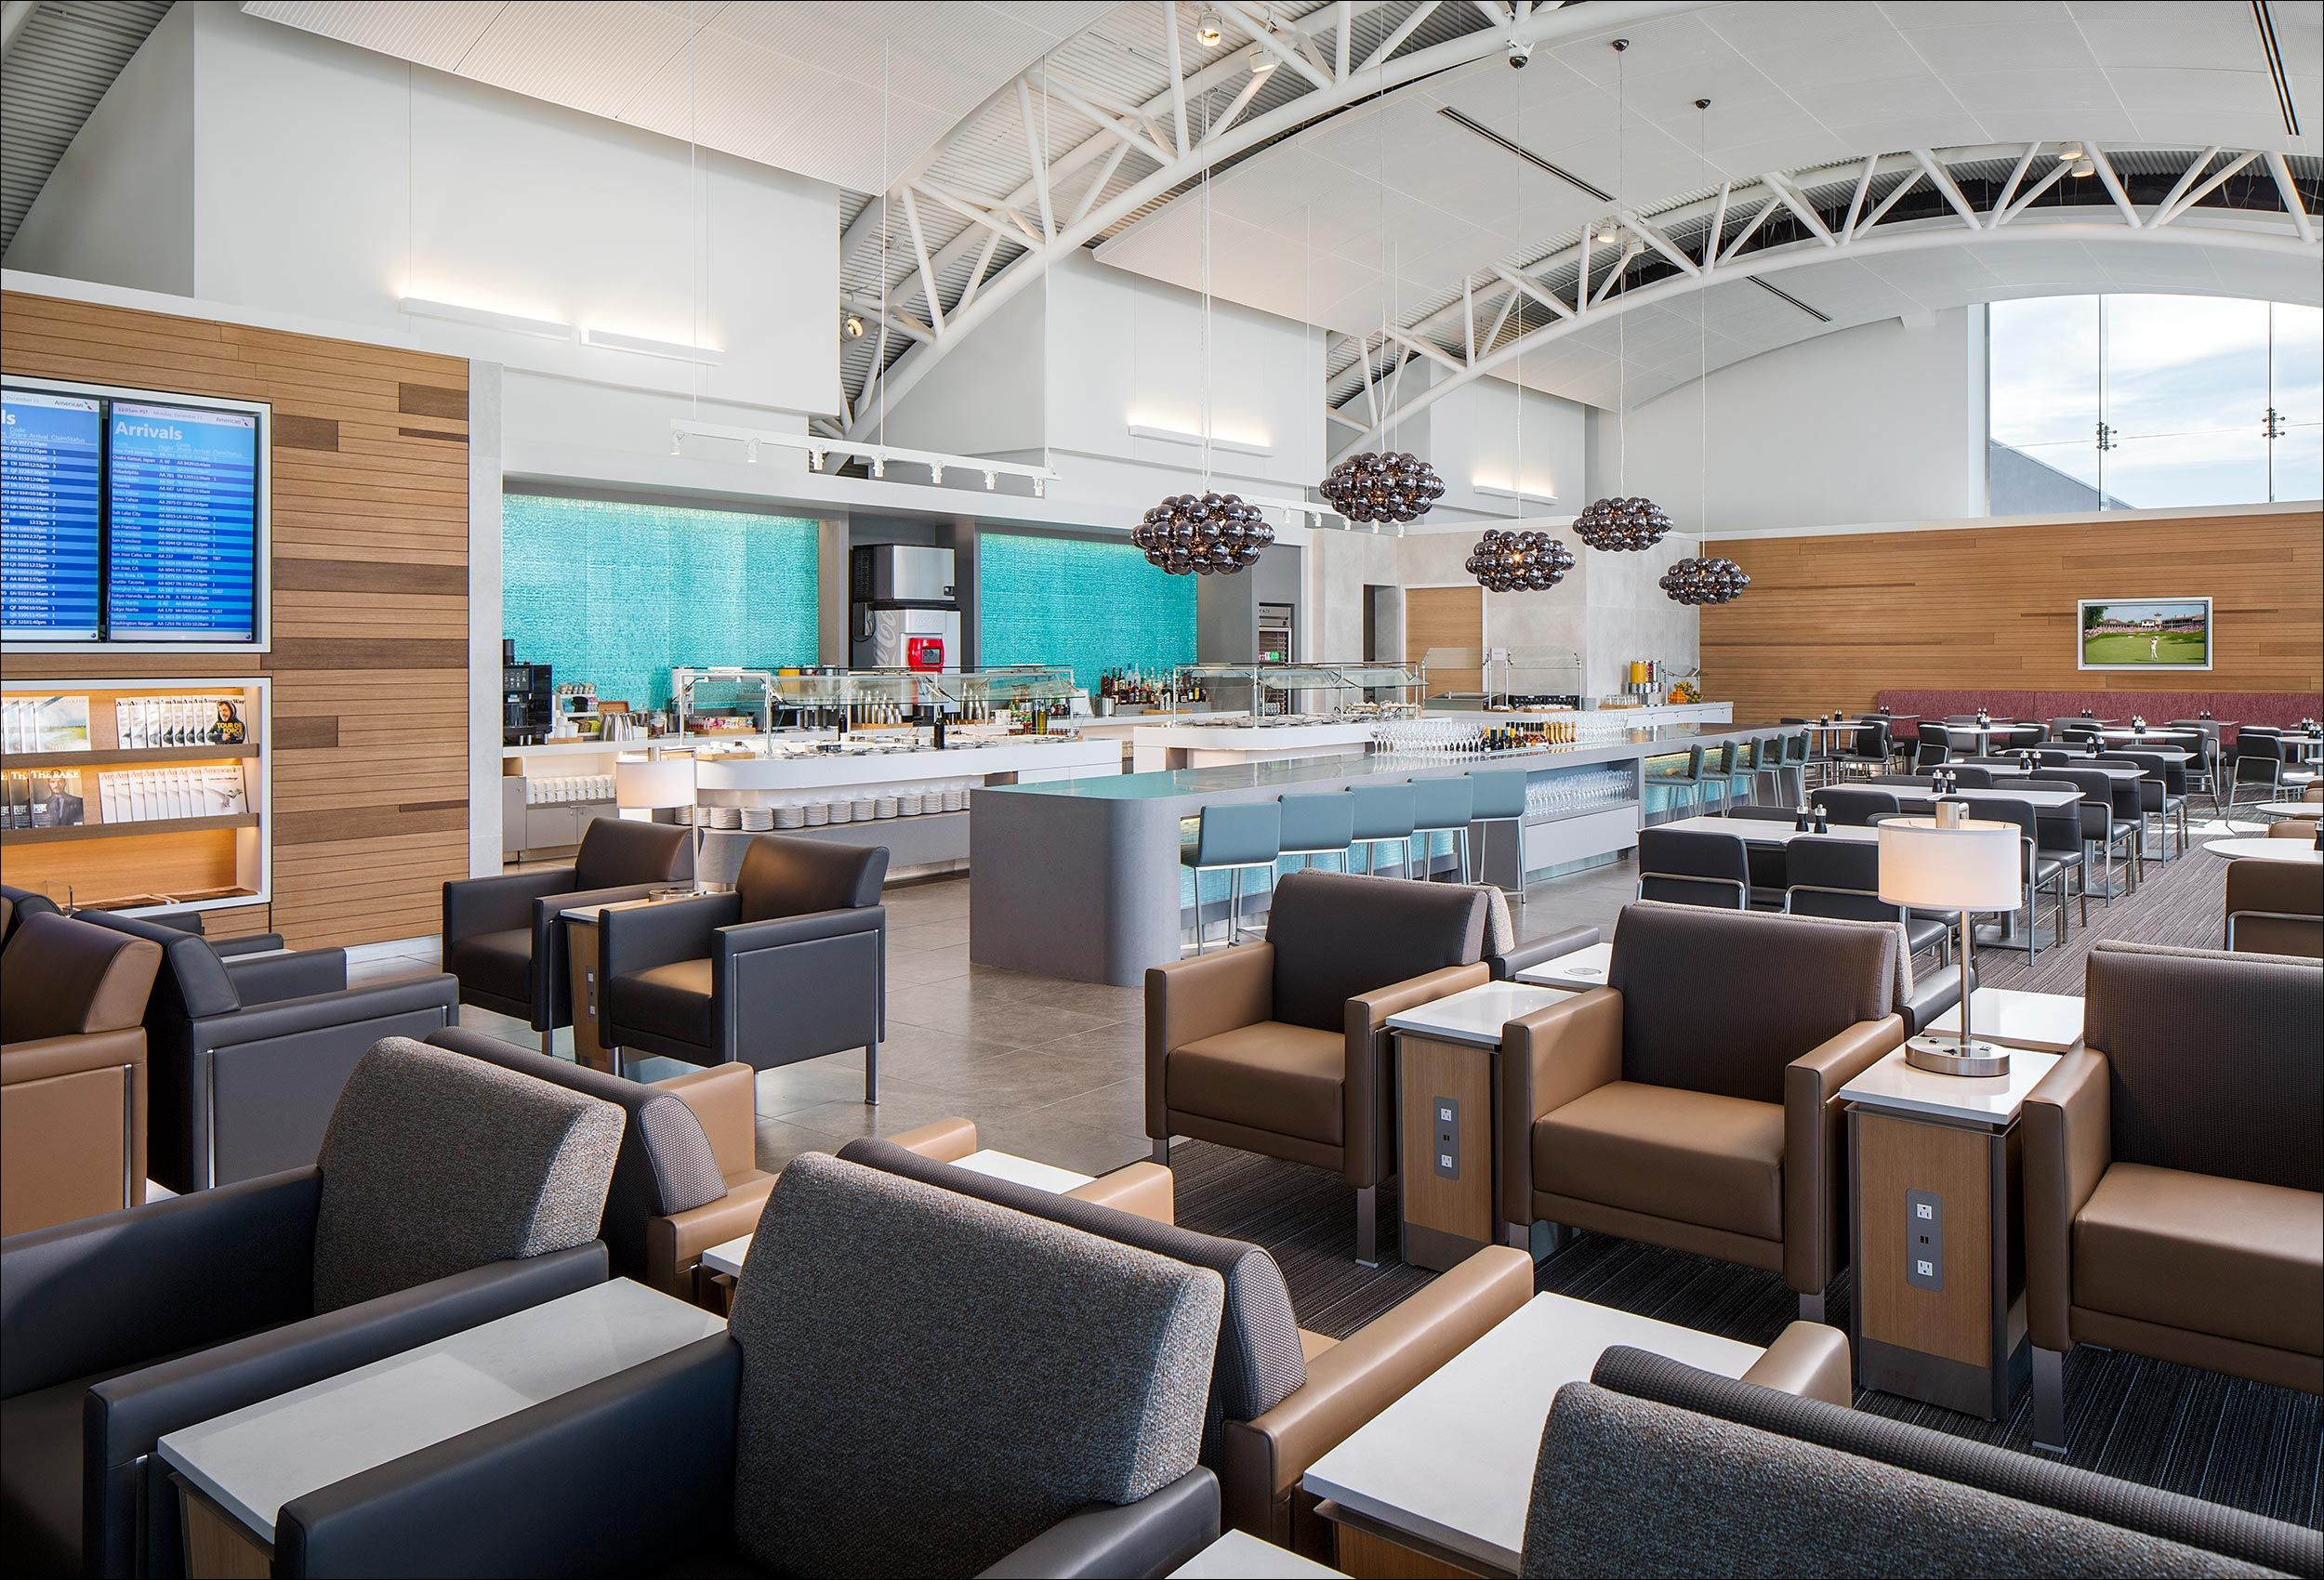 AmericanAirlines_AdmiralClub_LosAngeles_DLRArchitects.jpg